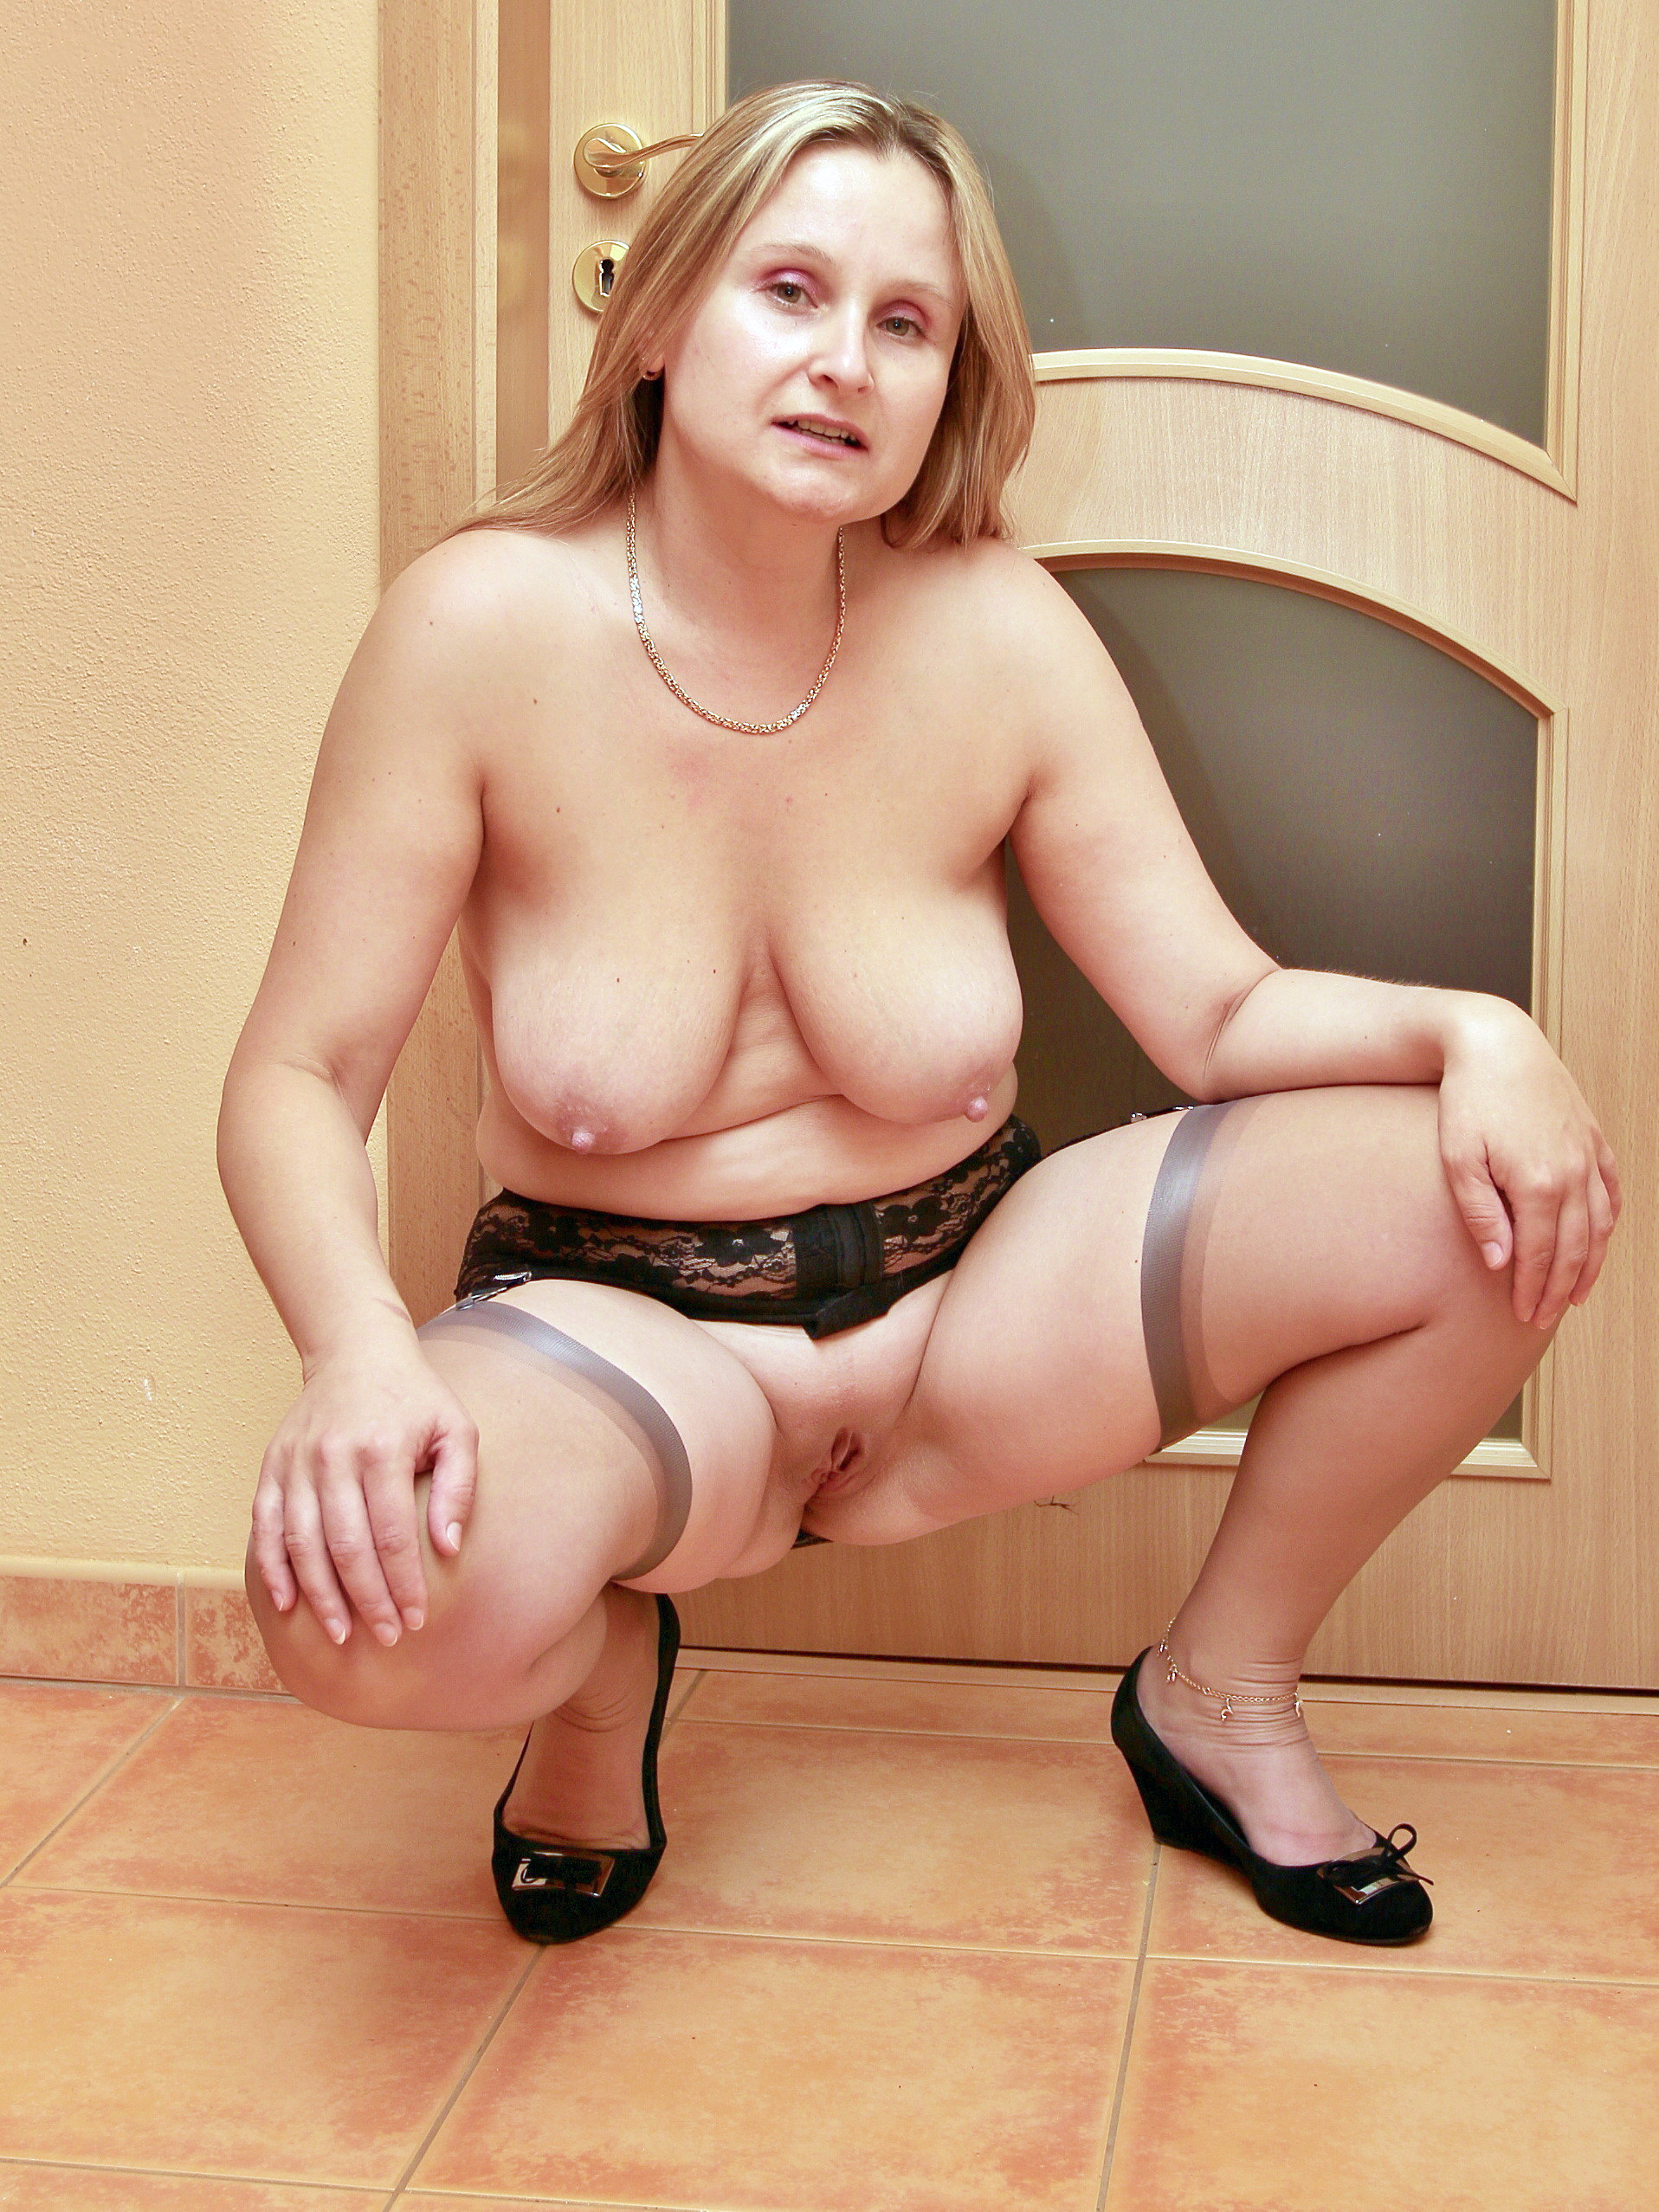 Share your Pantyhose granny stockings